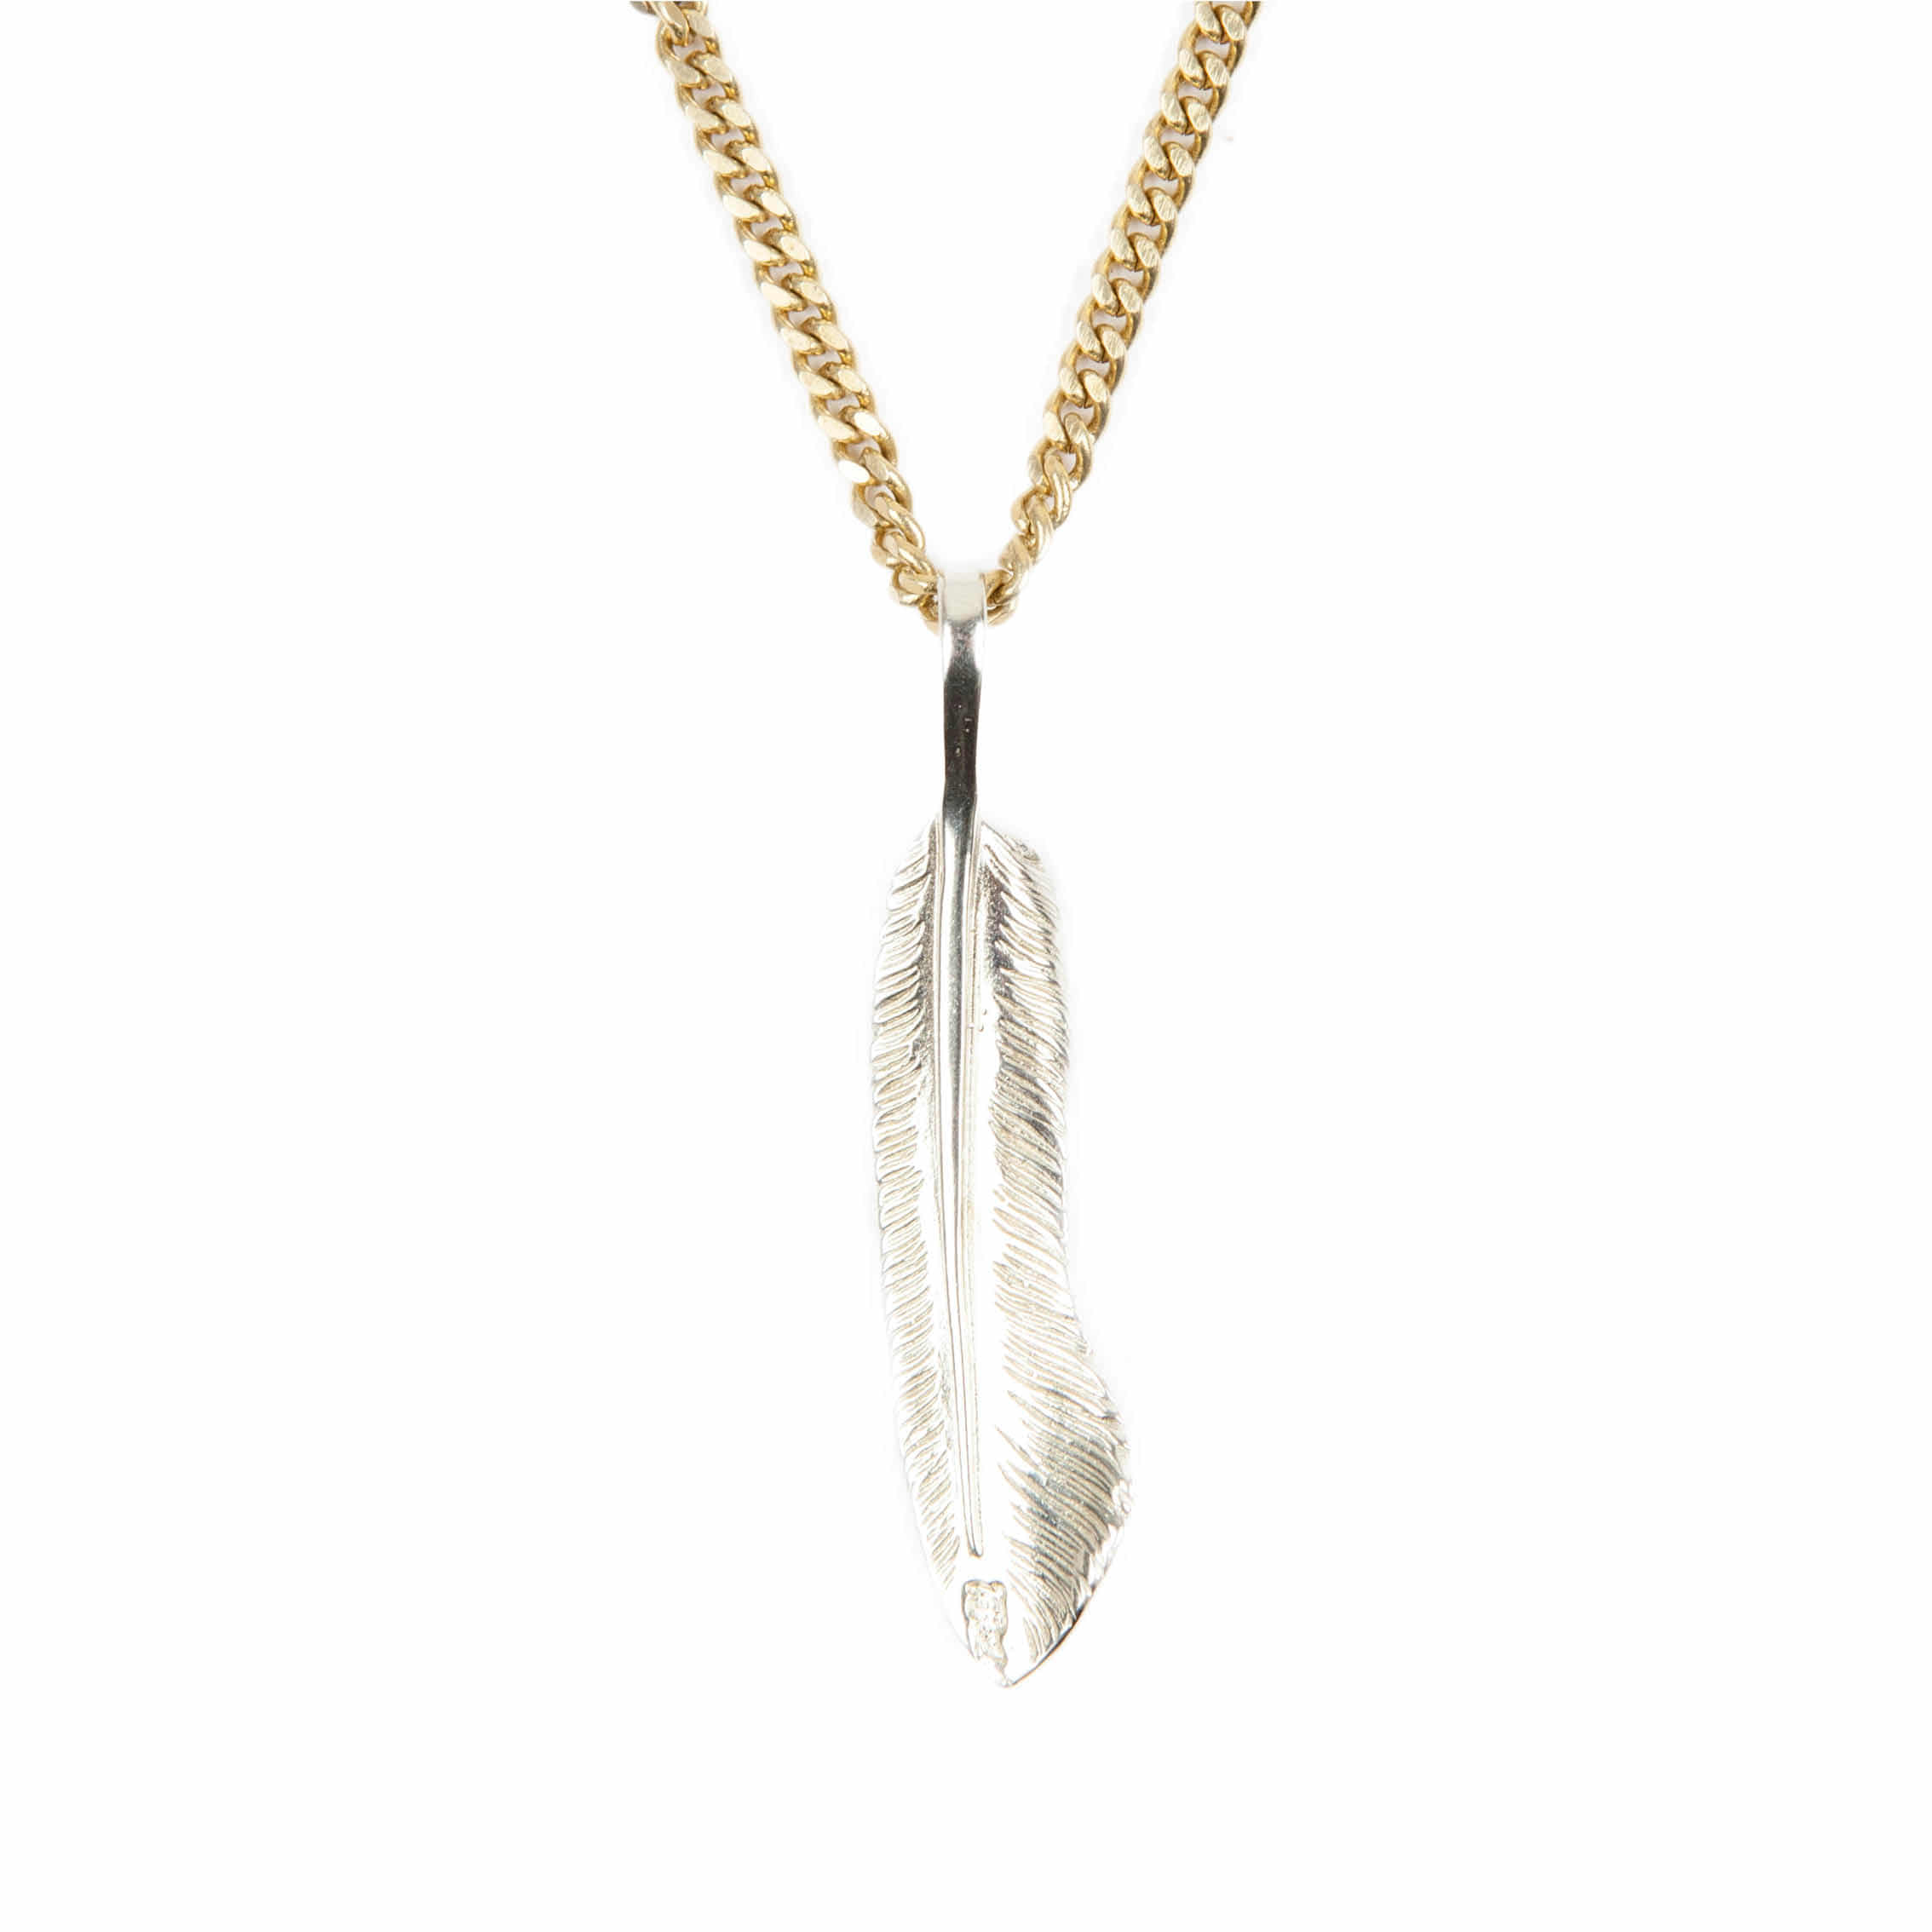 AGINGCCC - 255# SOLIDBRASS FEATHER NECKLACE-NO.2